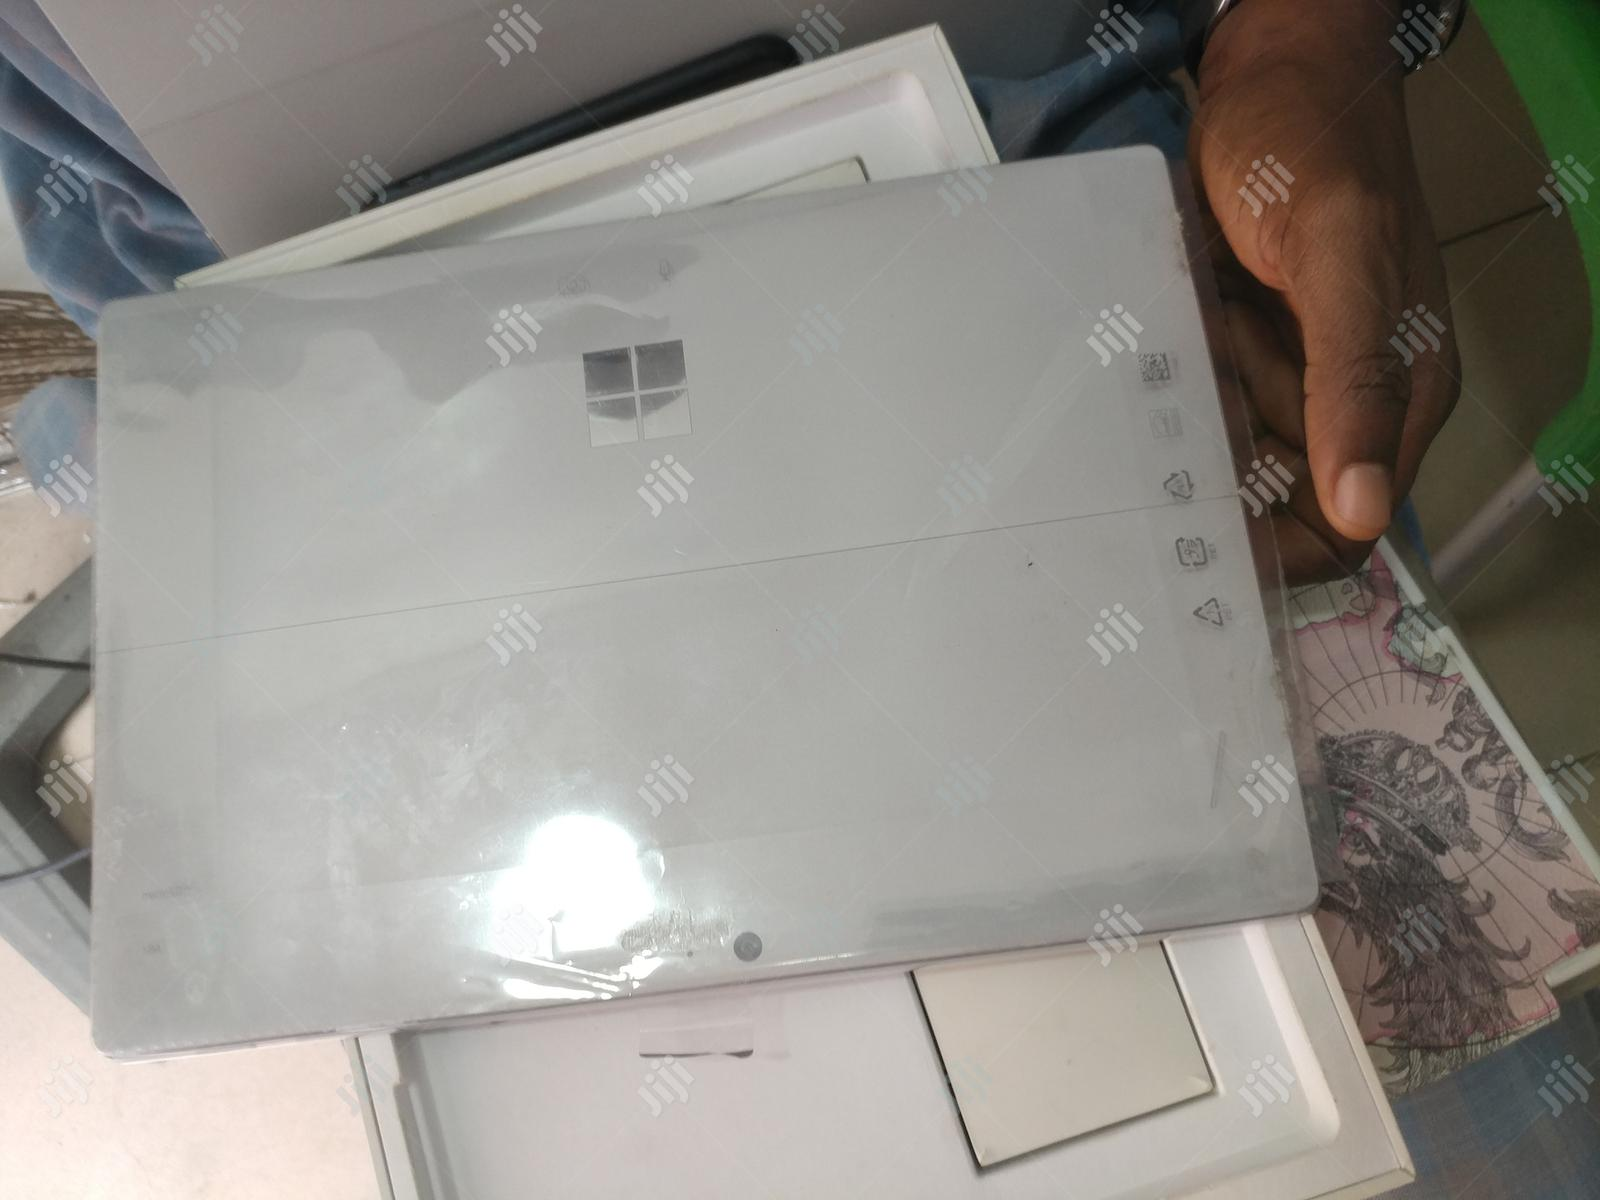 Laptop Microsoft Surface Pro 4 8GB Intel Core i5 HDD 256GB   Laptops & Computers for sale in Ikeja, Lagos State, Nigeria